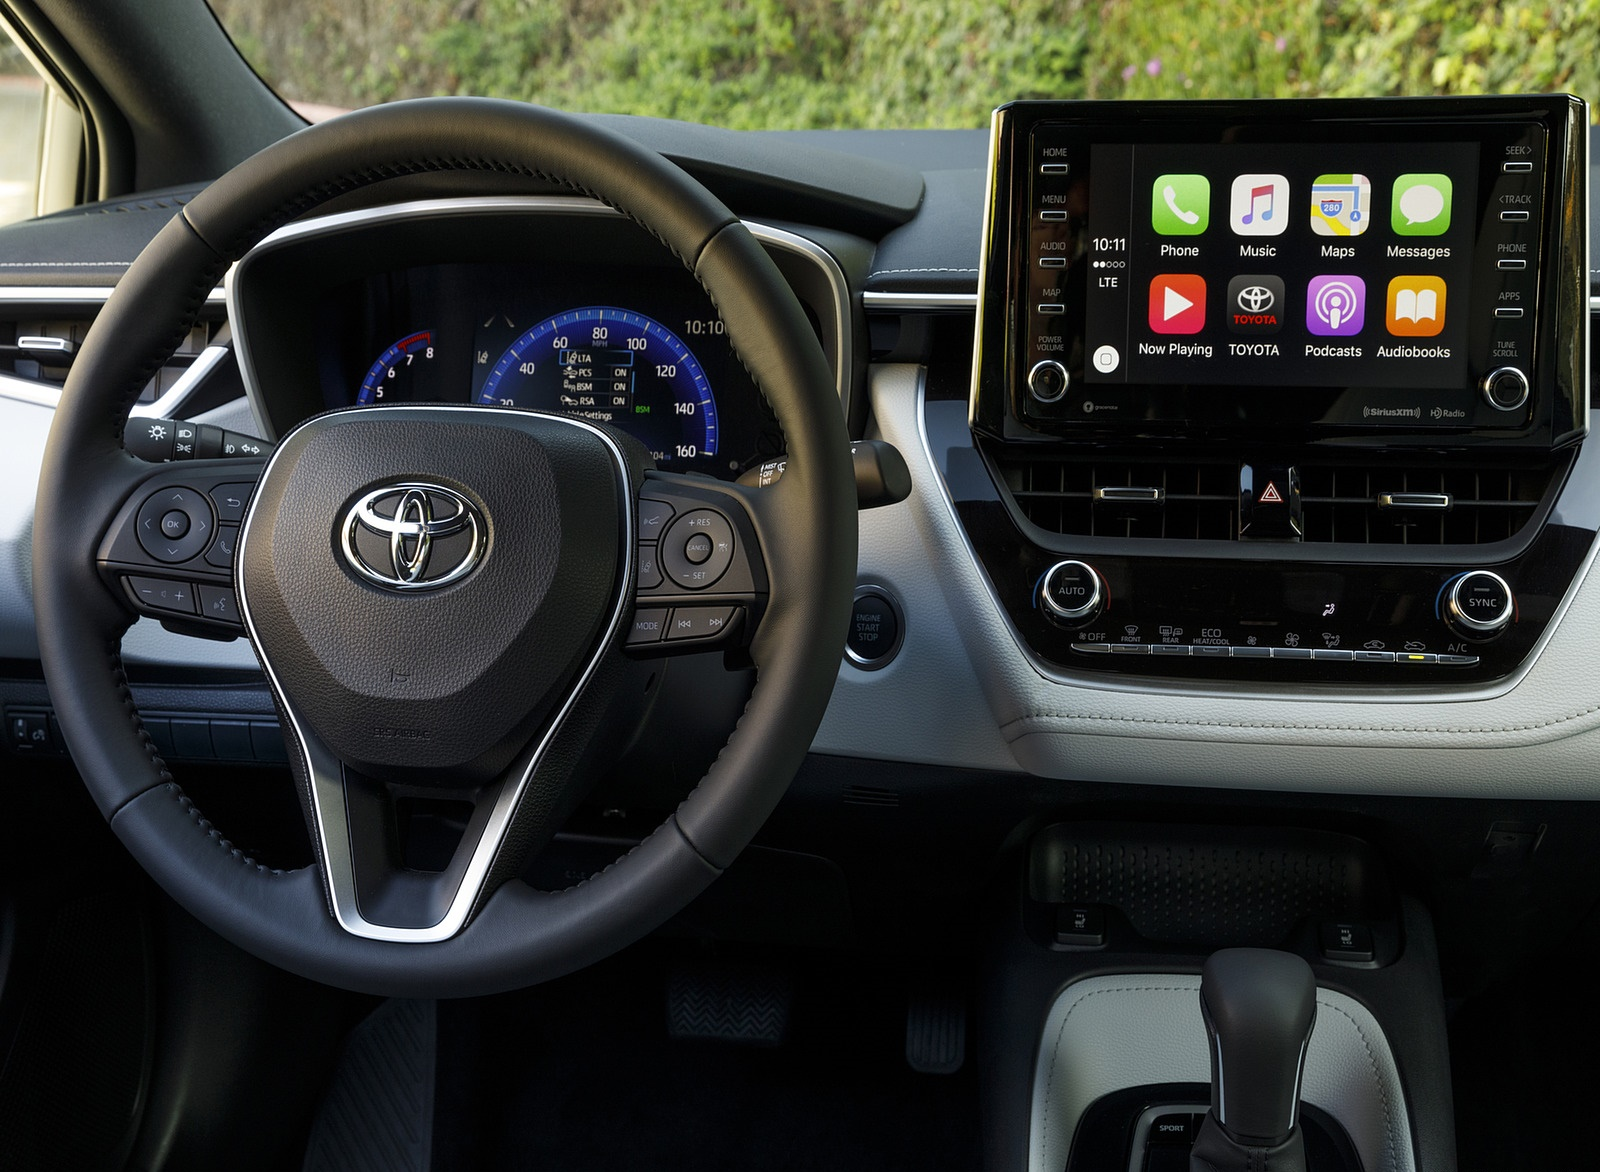 2019 Toyota Corolla Hatchback Interior Detail Wallpapers #46 of 75